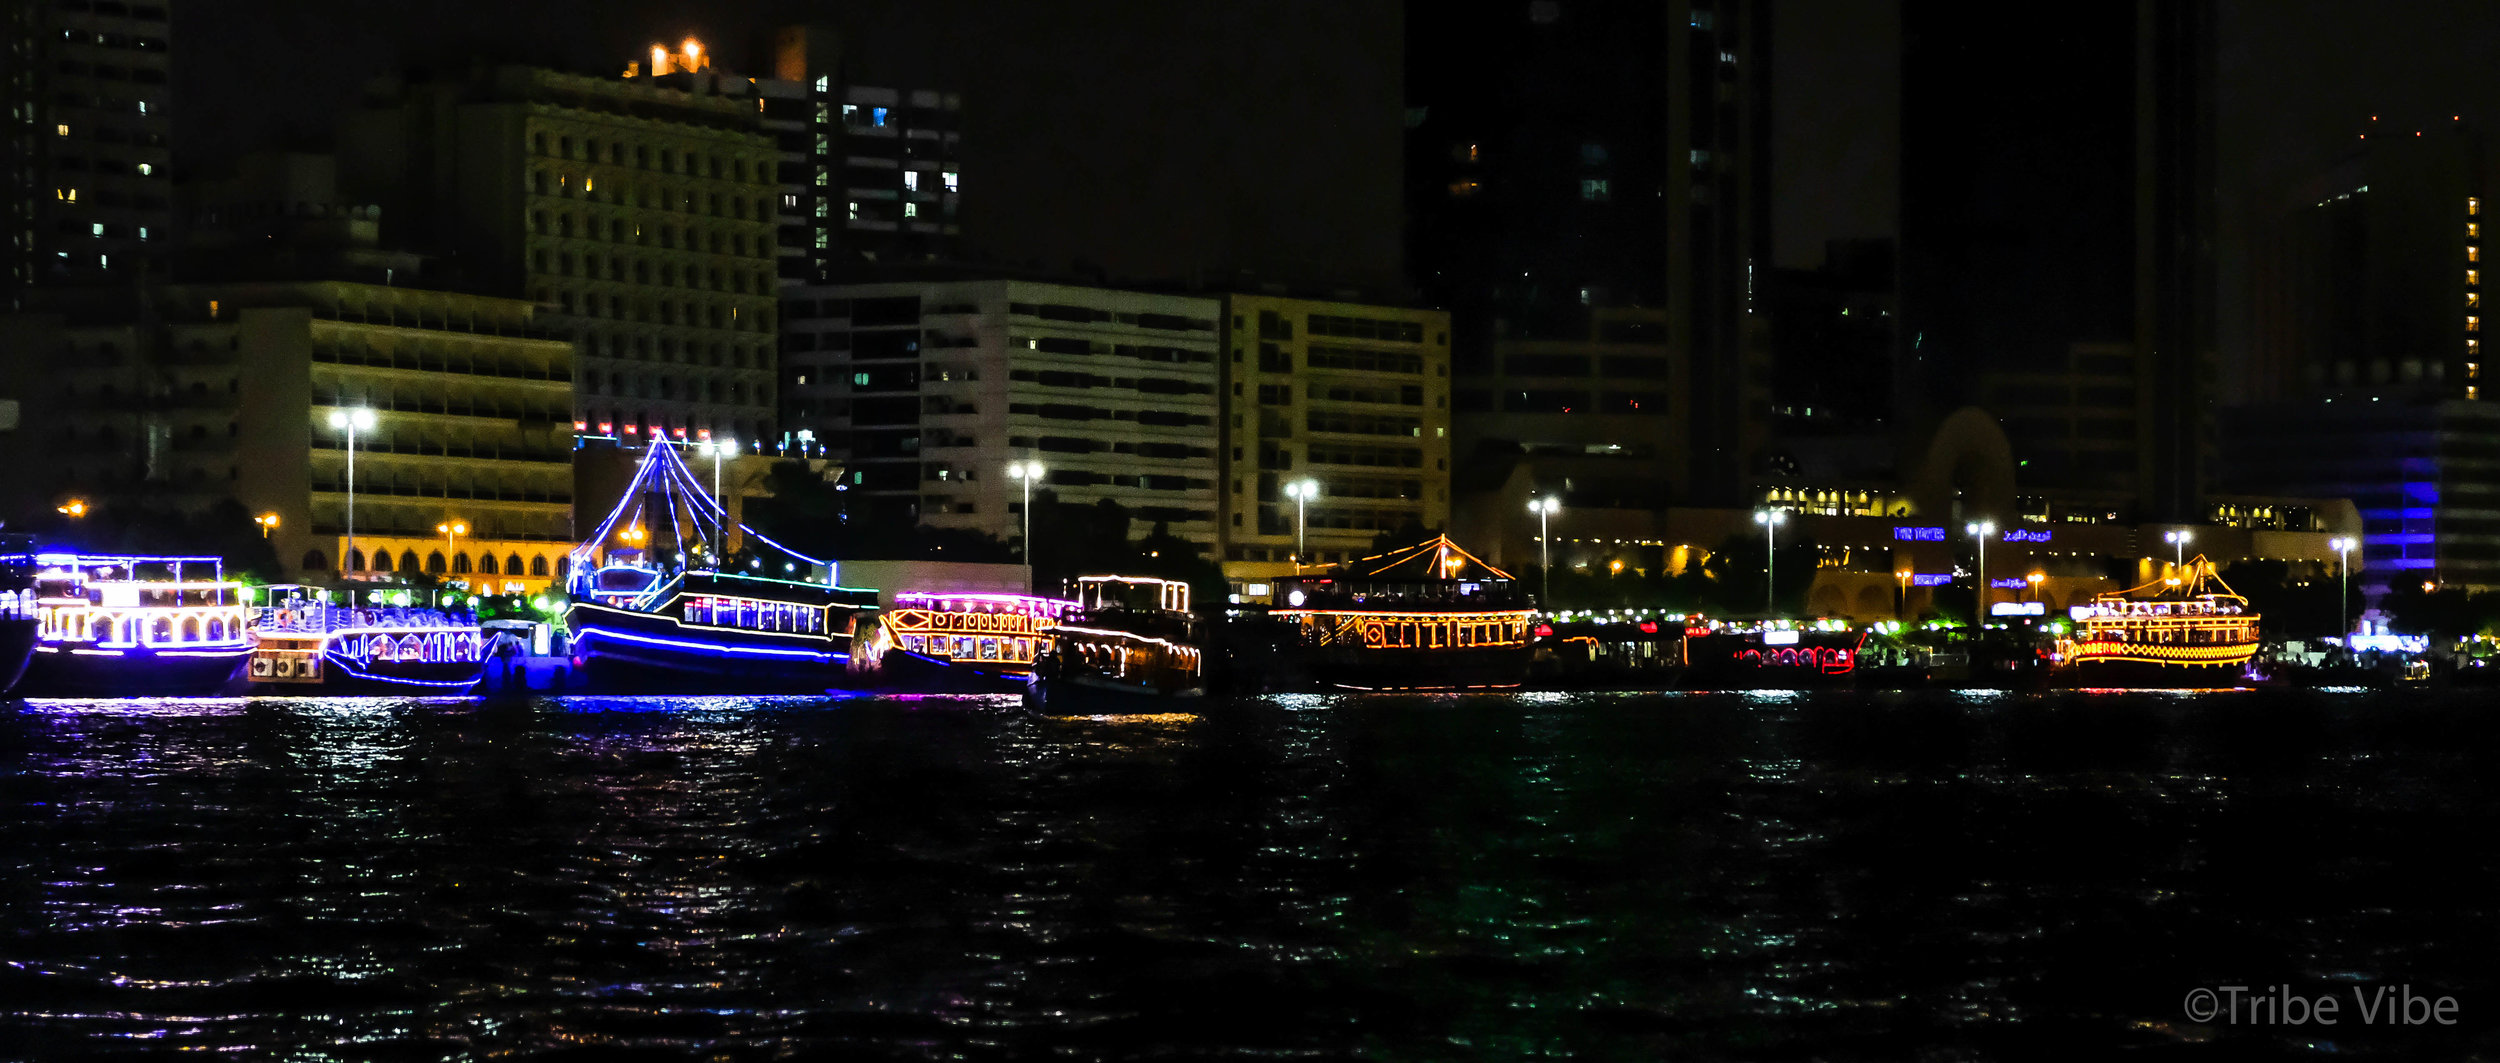 Dubai Creek Canal by night